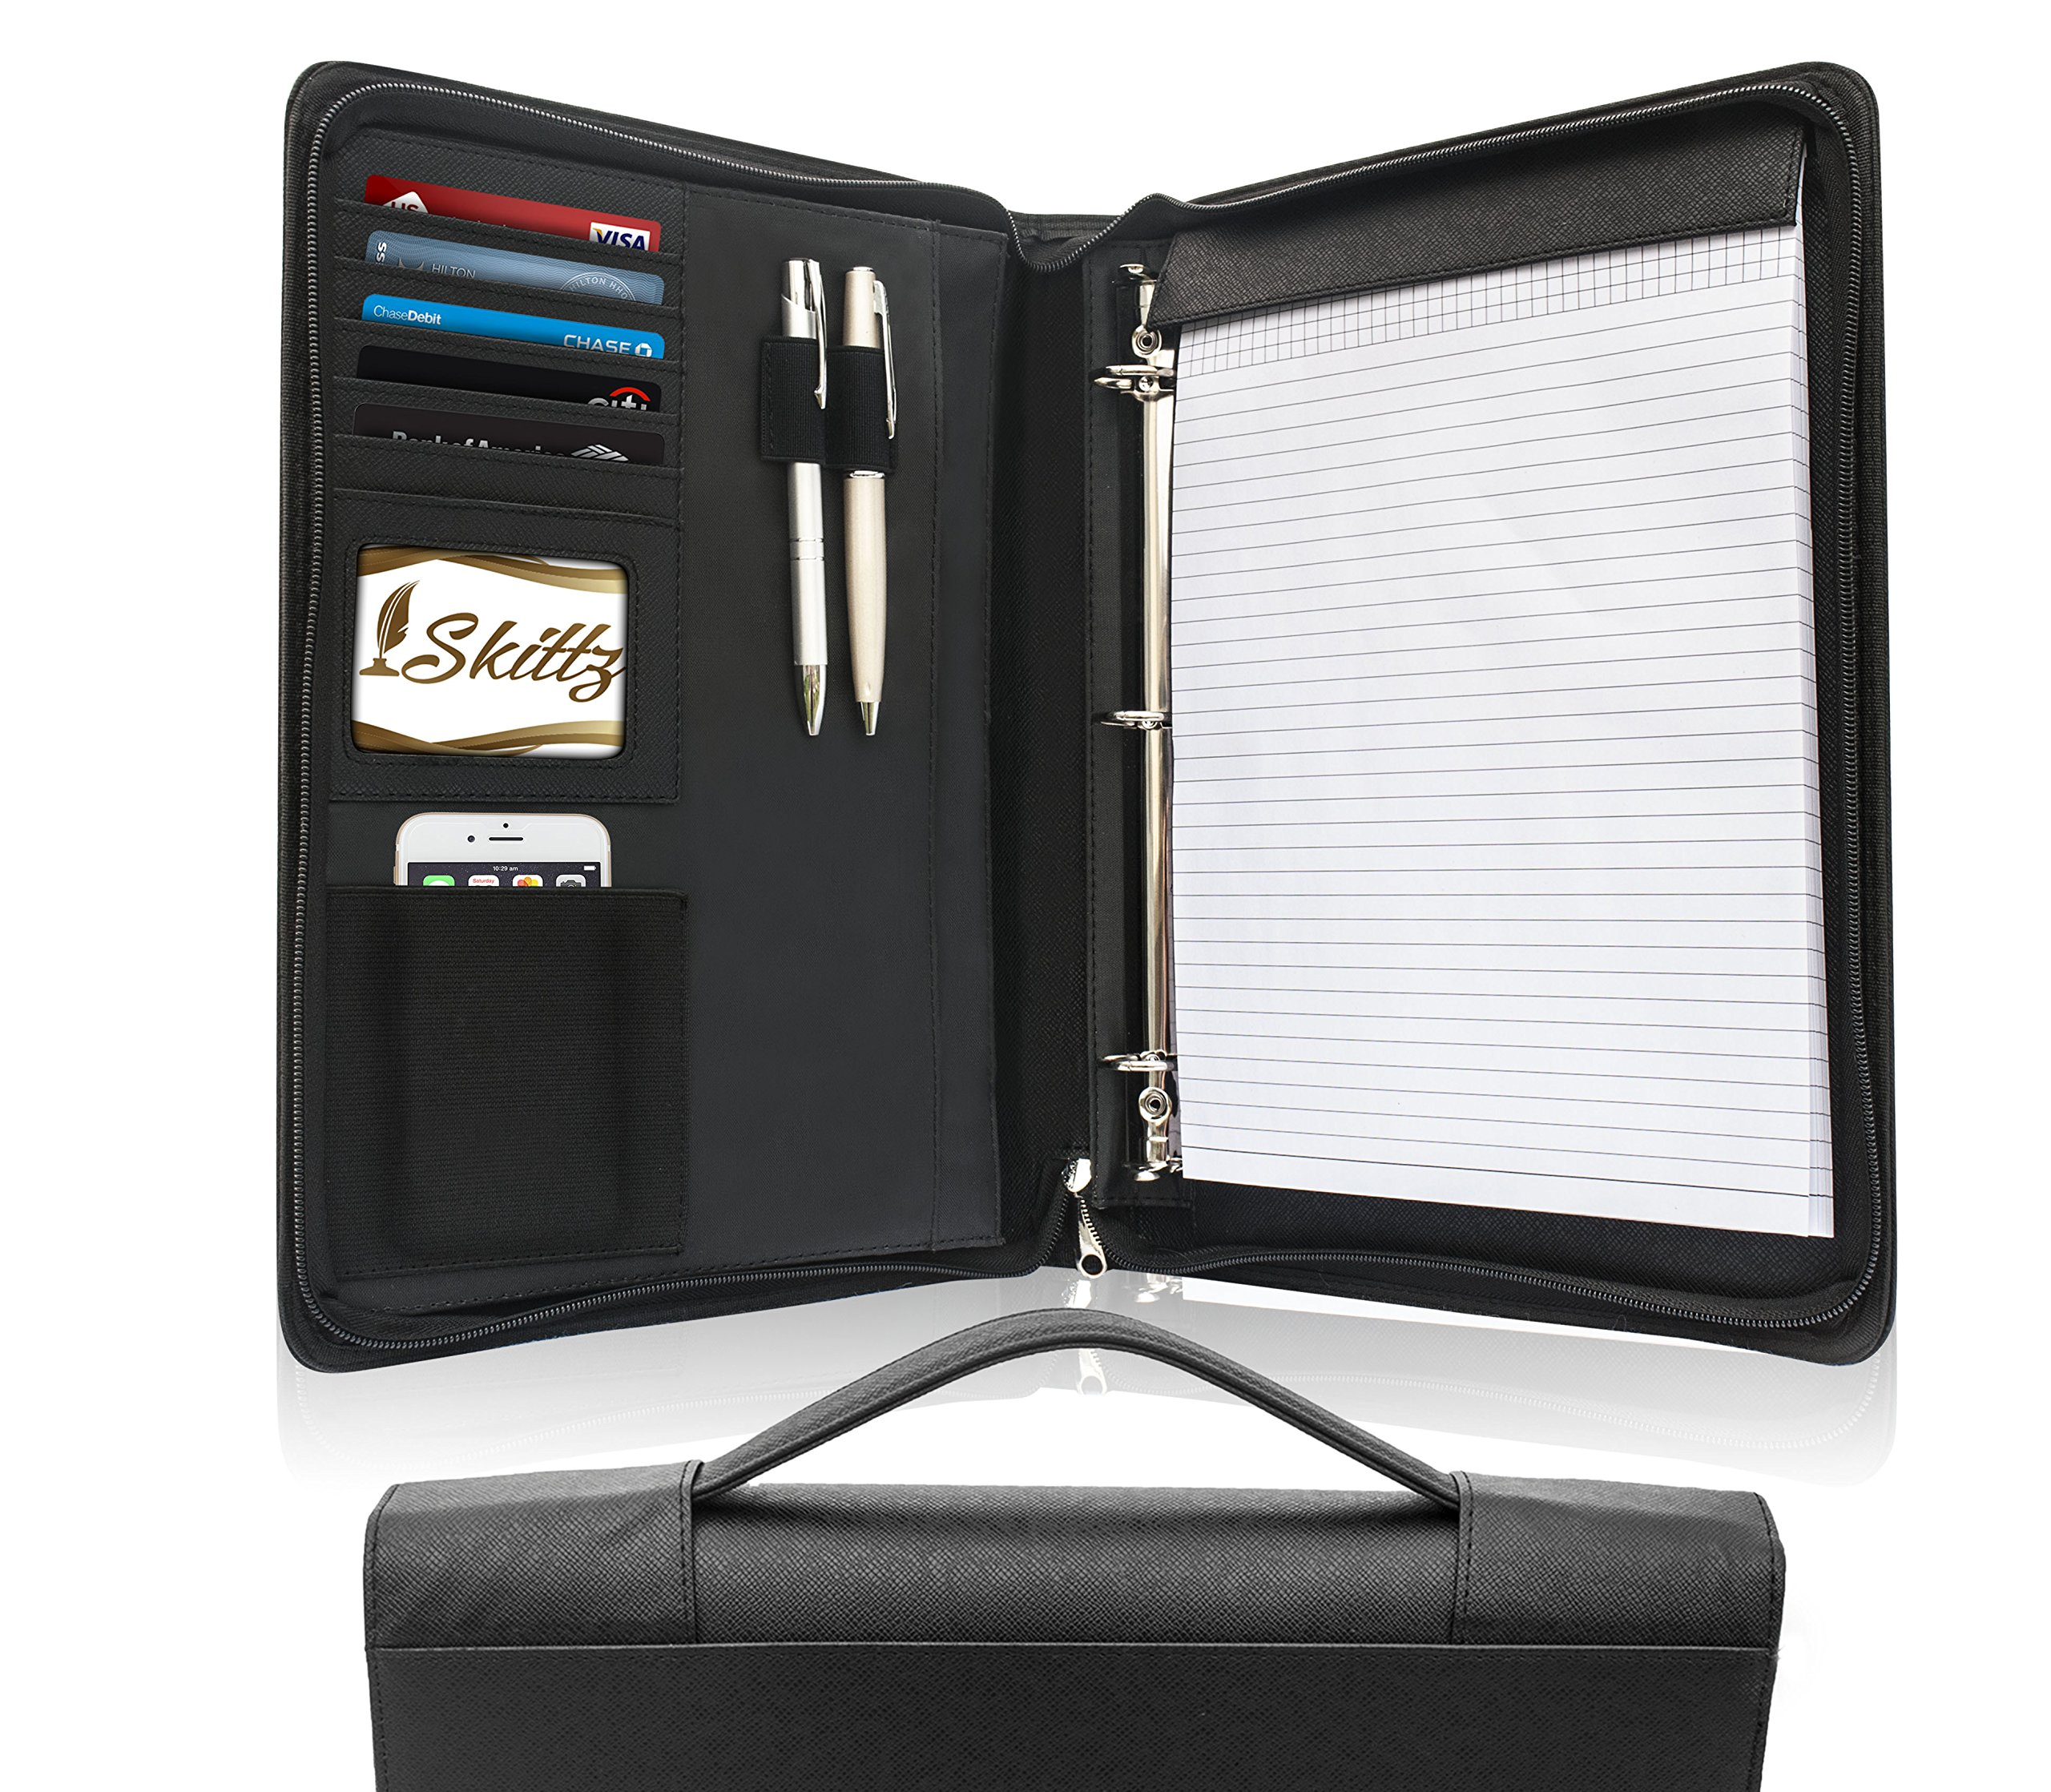 Skittz Leather Zippered Padfolio Business Portfolio With Carry Handle & Removable 3 Ring Organizer